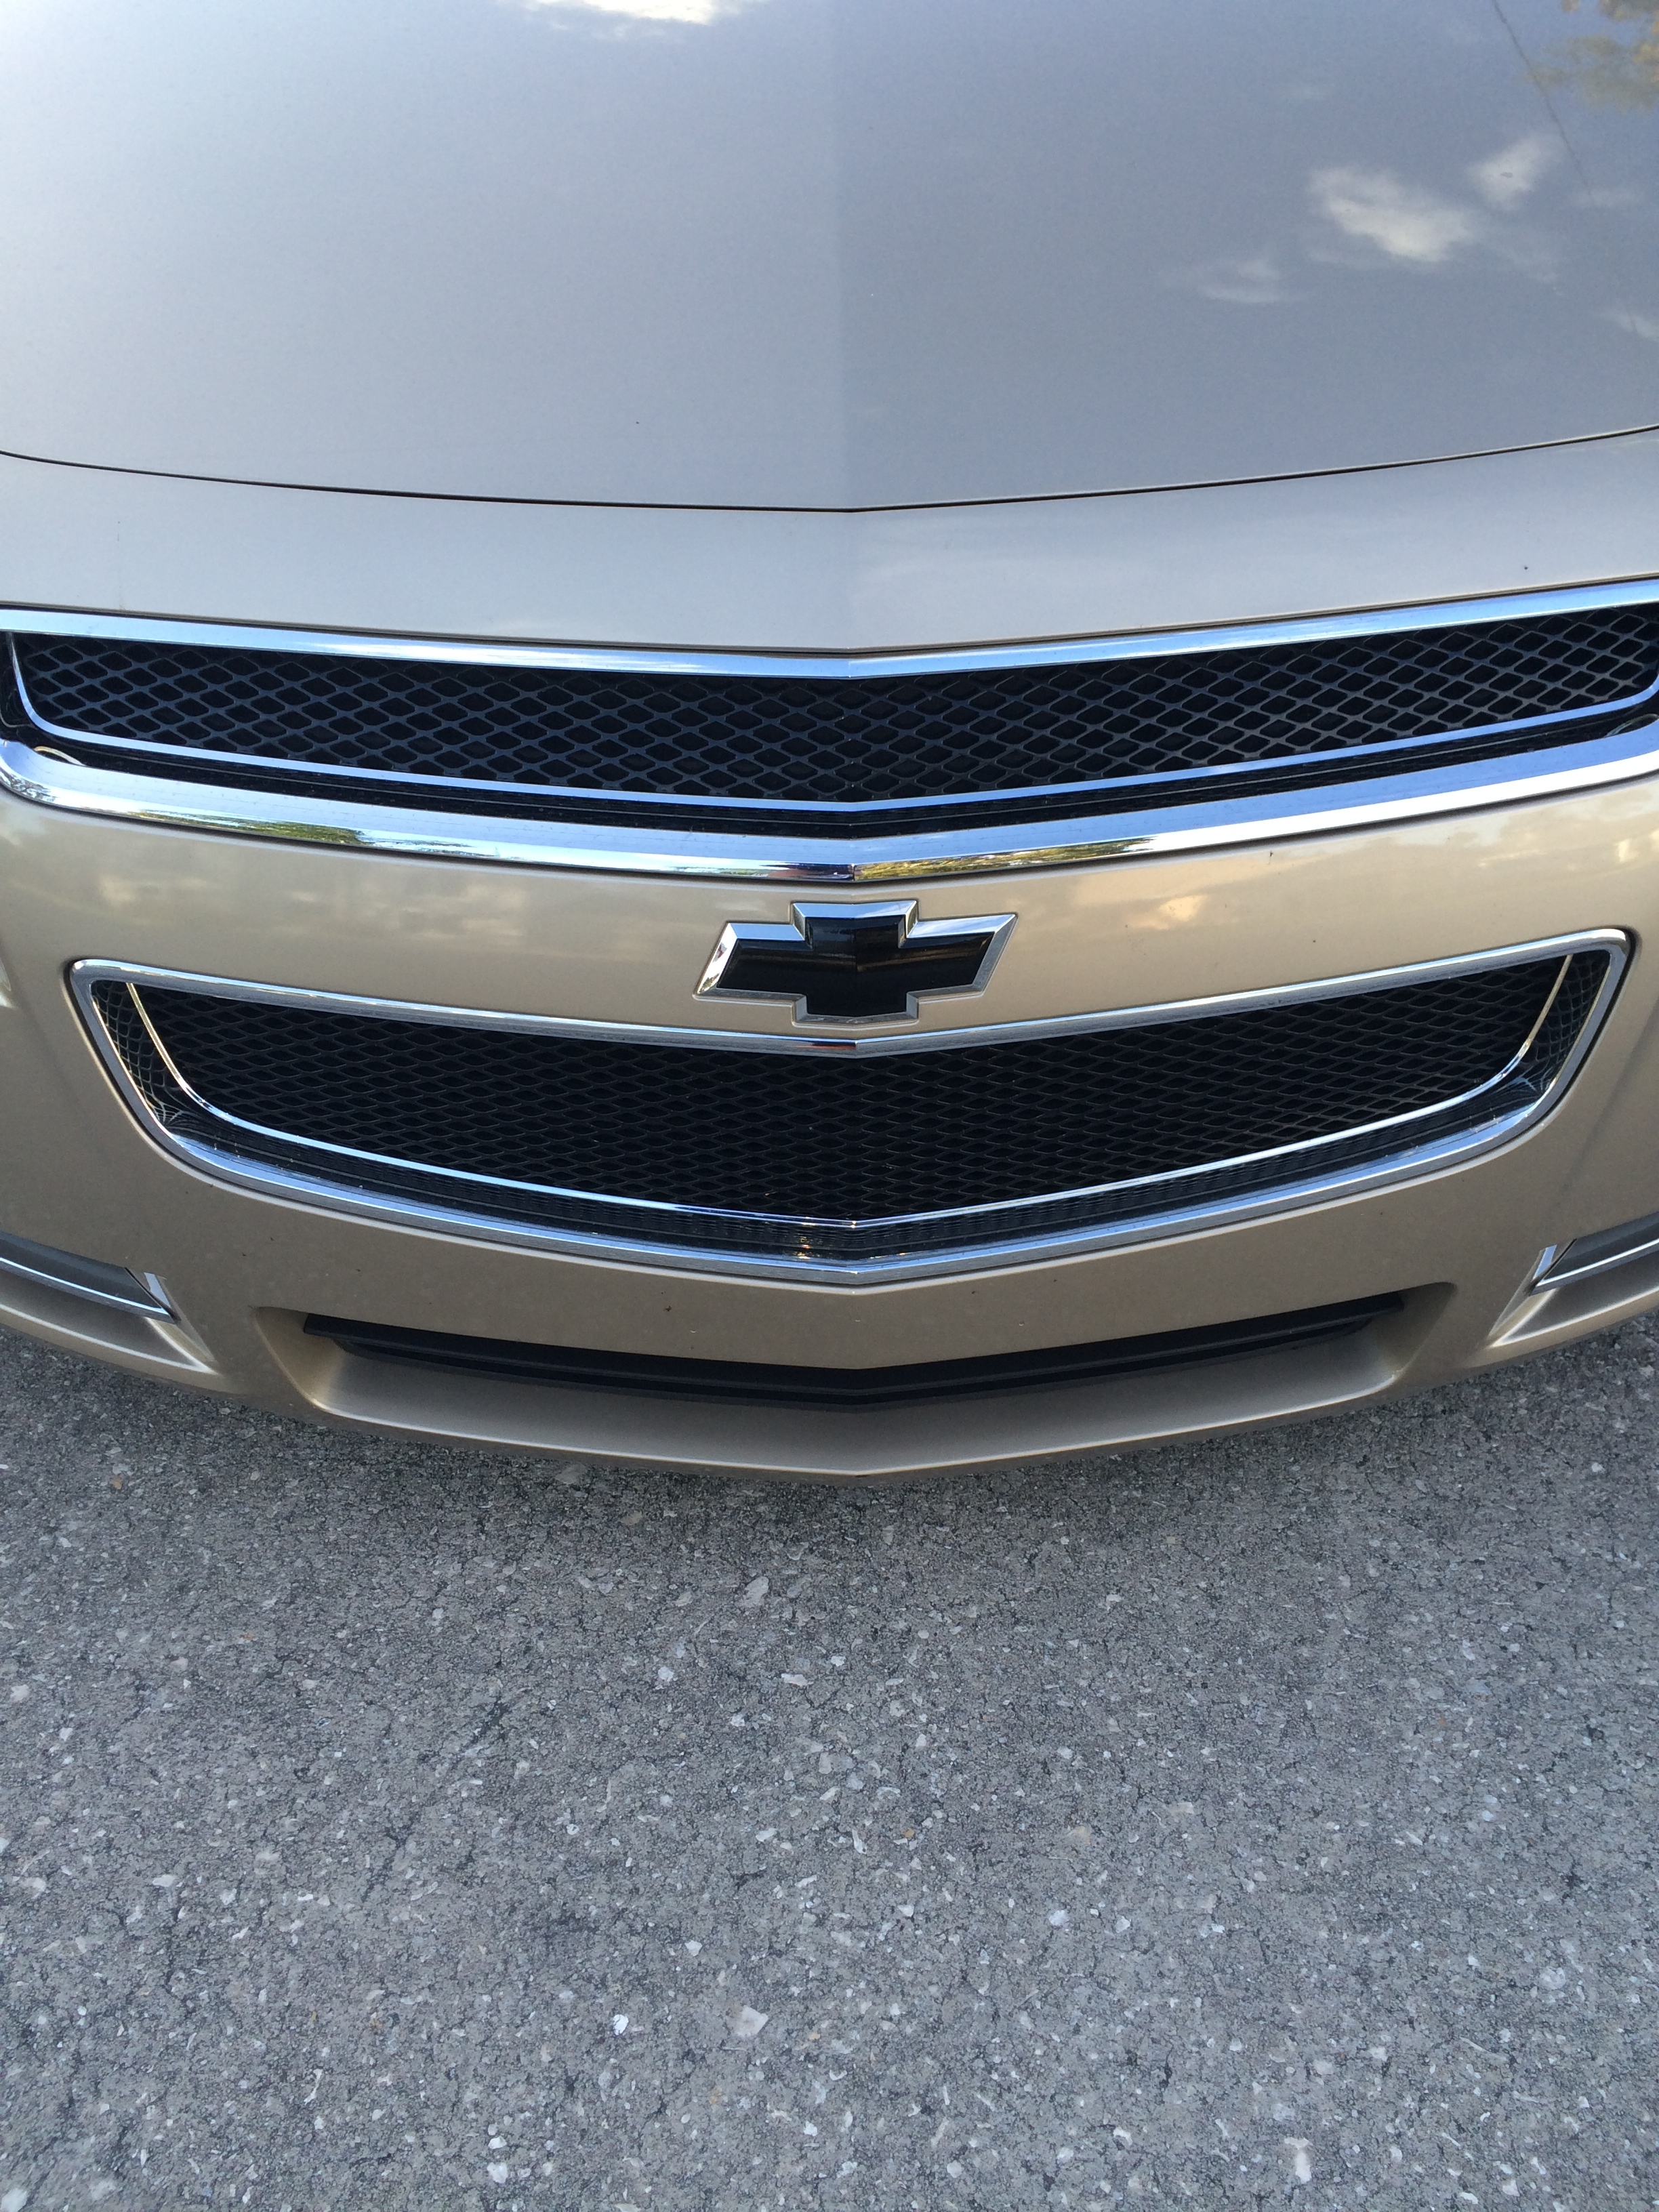 blacked out chevy symbol - 19035378